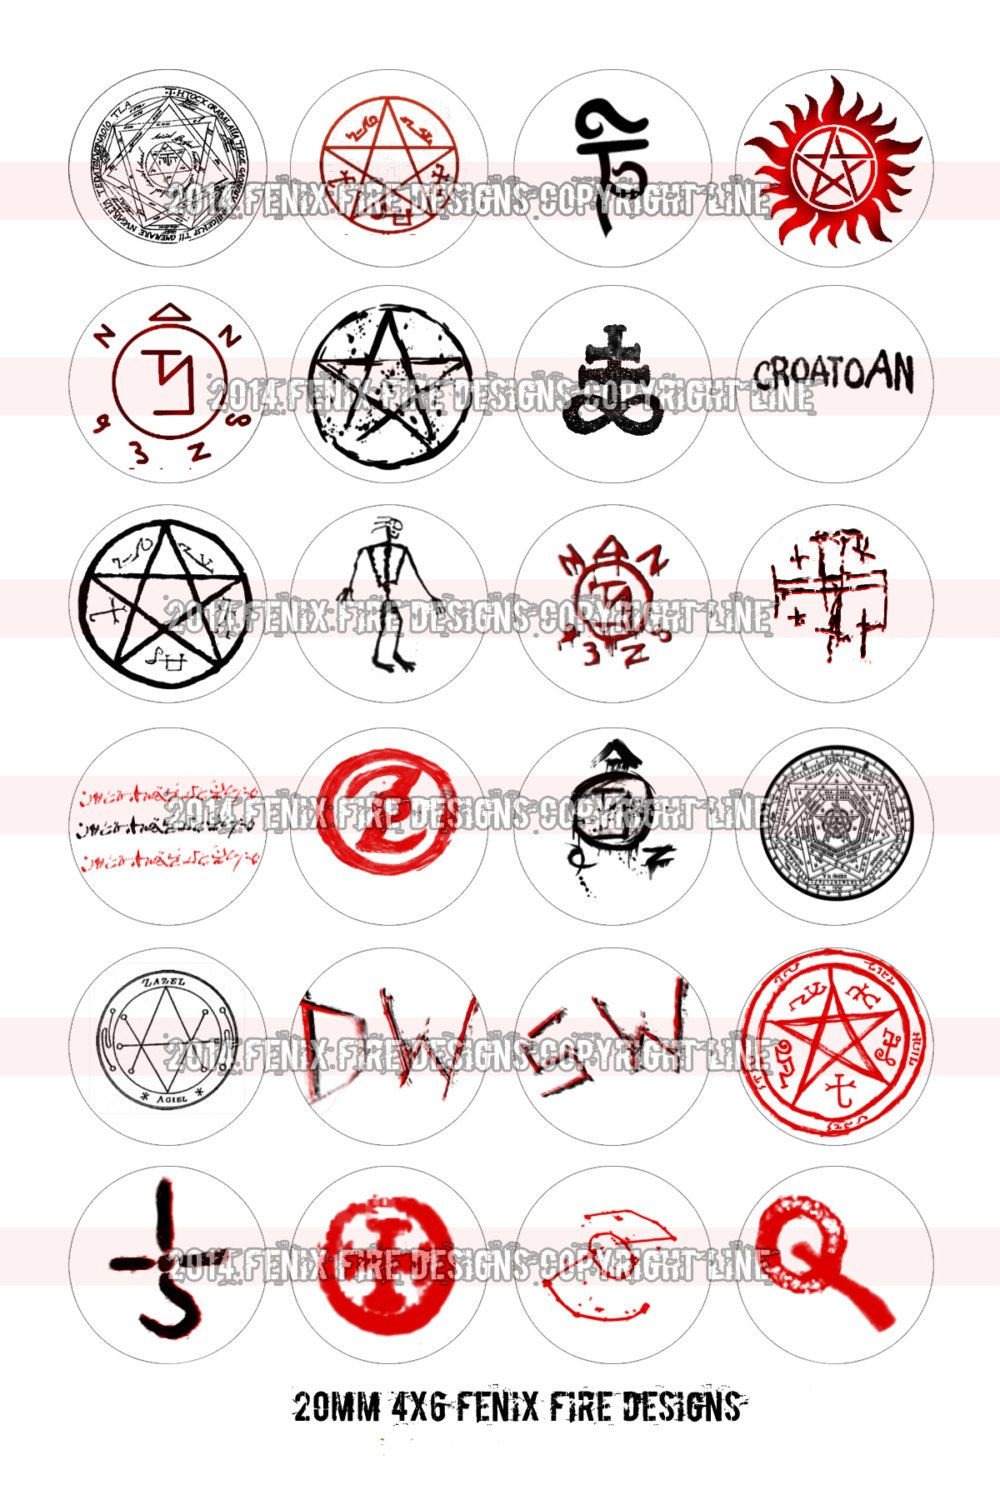 New to fenixfiredesigns on etsy supernatural symbols 20mm package new to fenixfiredesigns on etsy supernatural symbols 20mm package 350 usd biocorpaavc Images